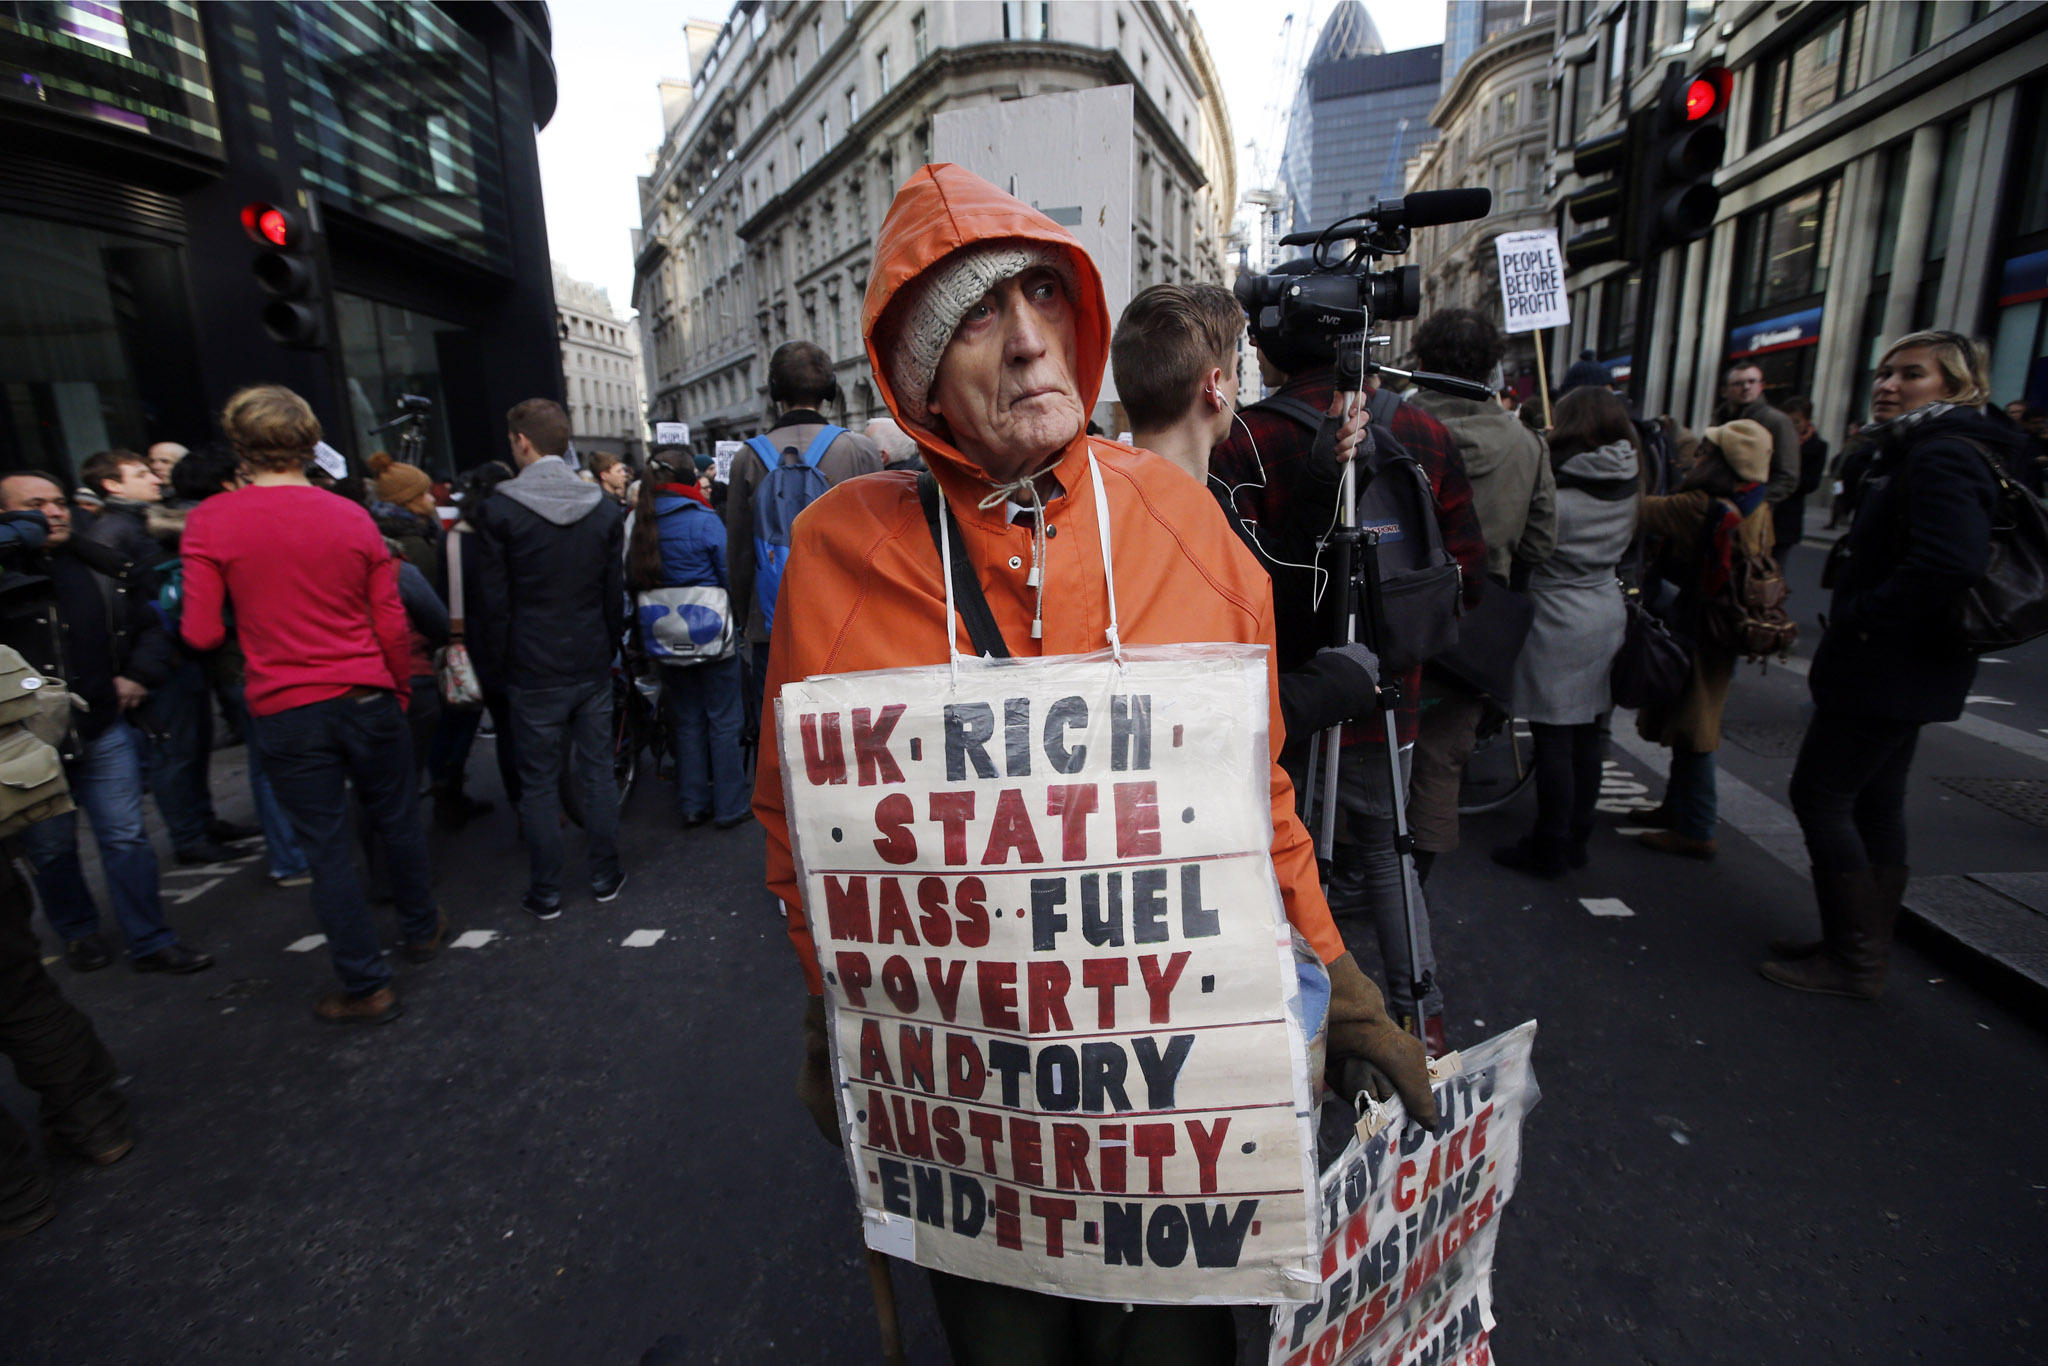 A protester, name not given, demonstrates against rising energy prices outside the headquarters of energy provider Npower in London's City financial district, Tuesday, Nov. 26, 2013. Hundreds of people from protest groups including UK Uncut and Fuel Poverty Action demonstrated against the rising energy prices.